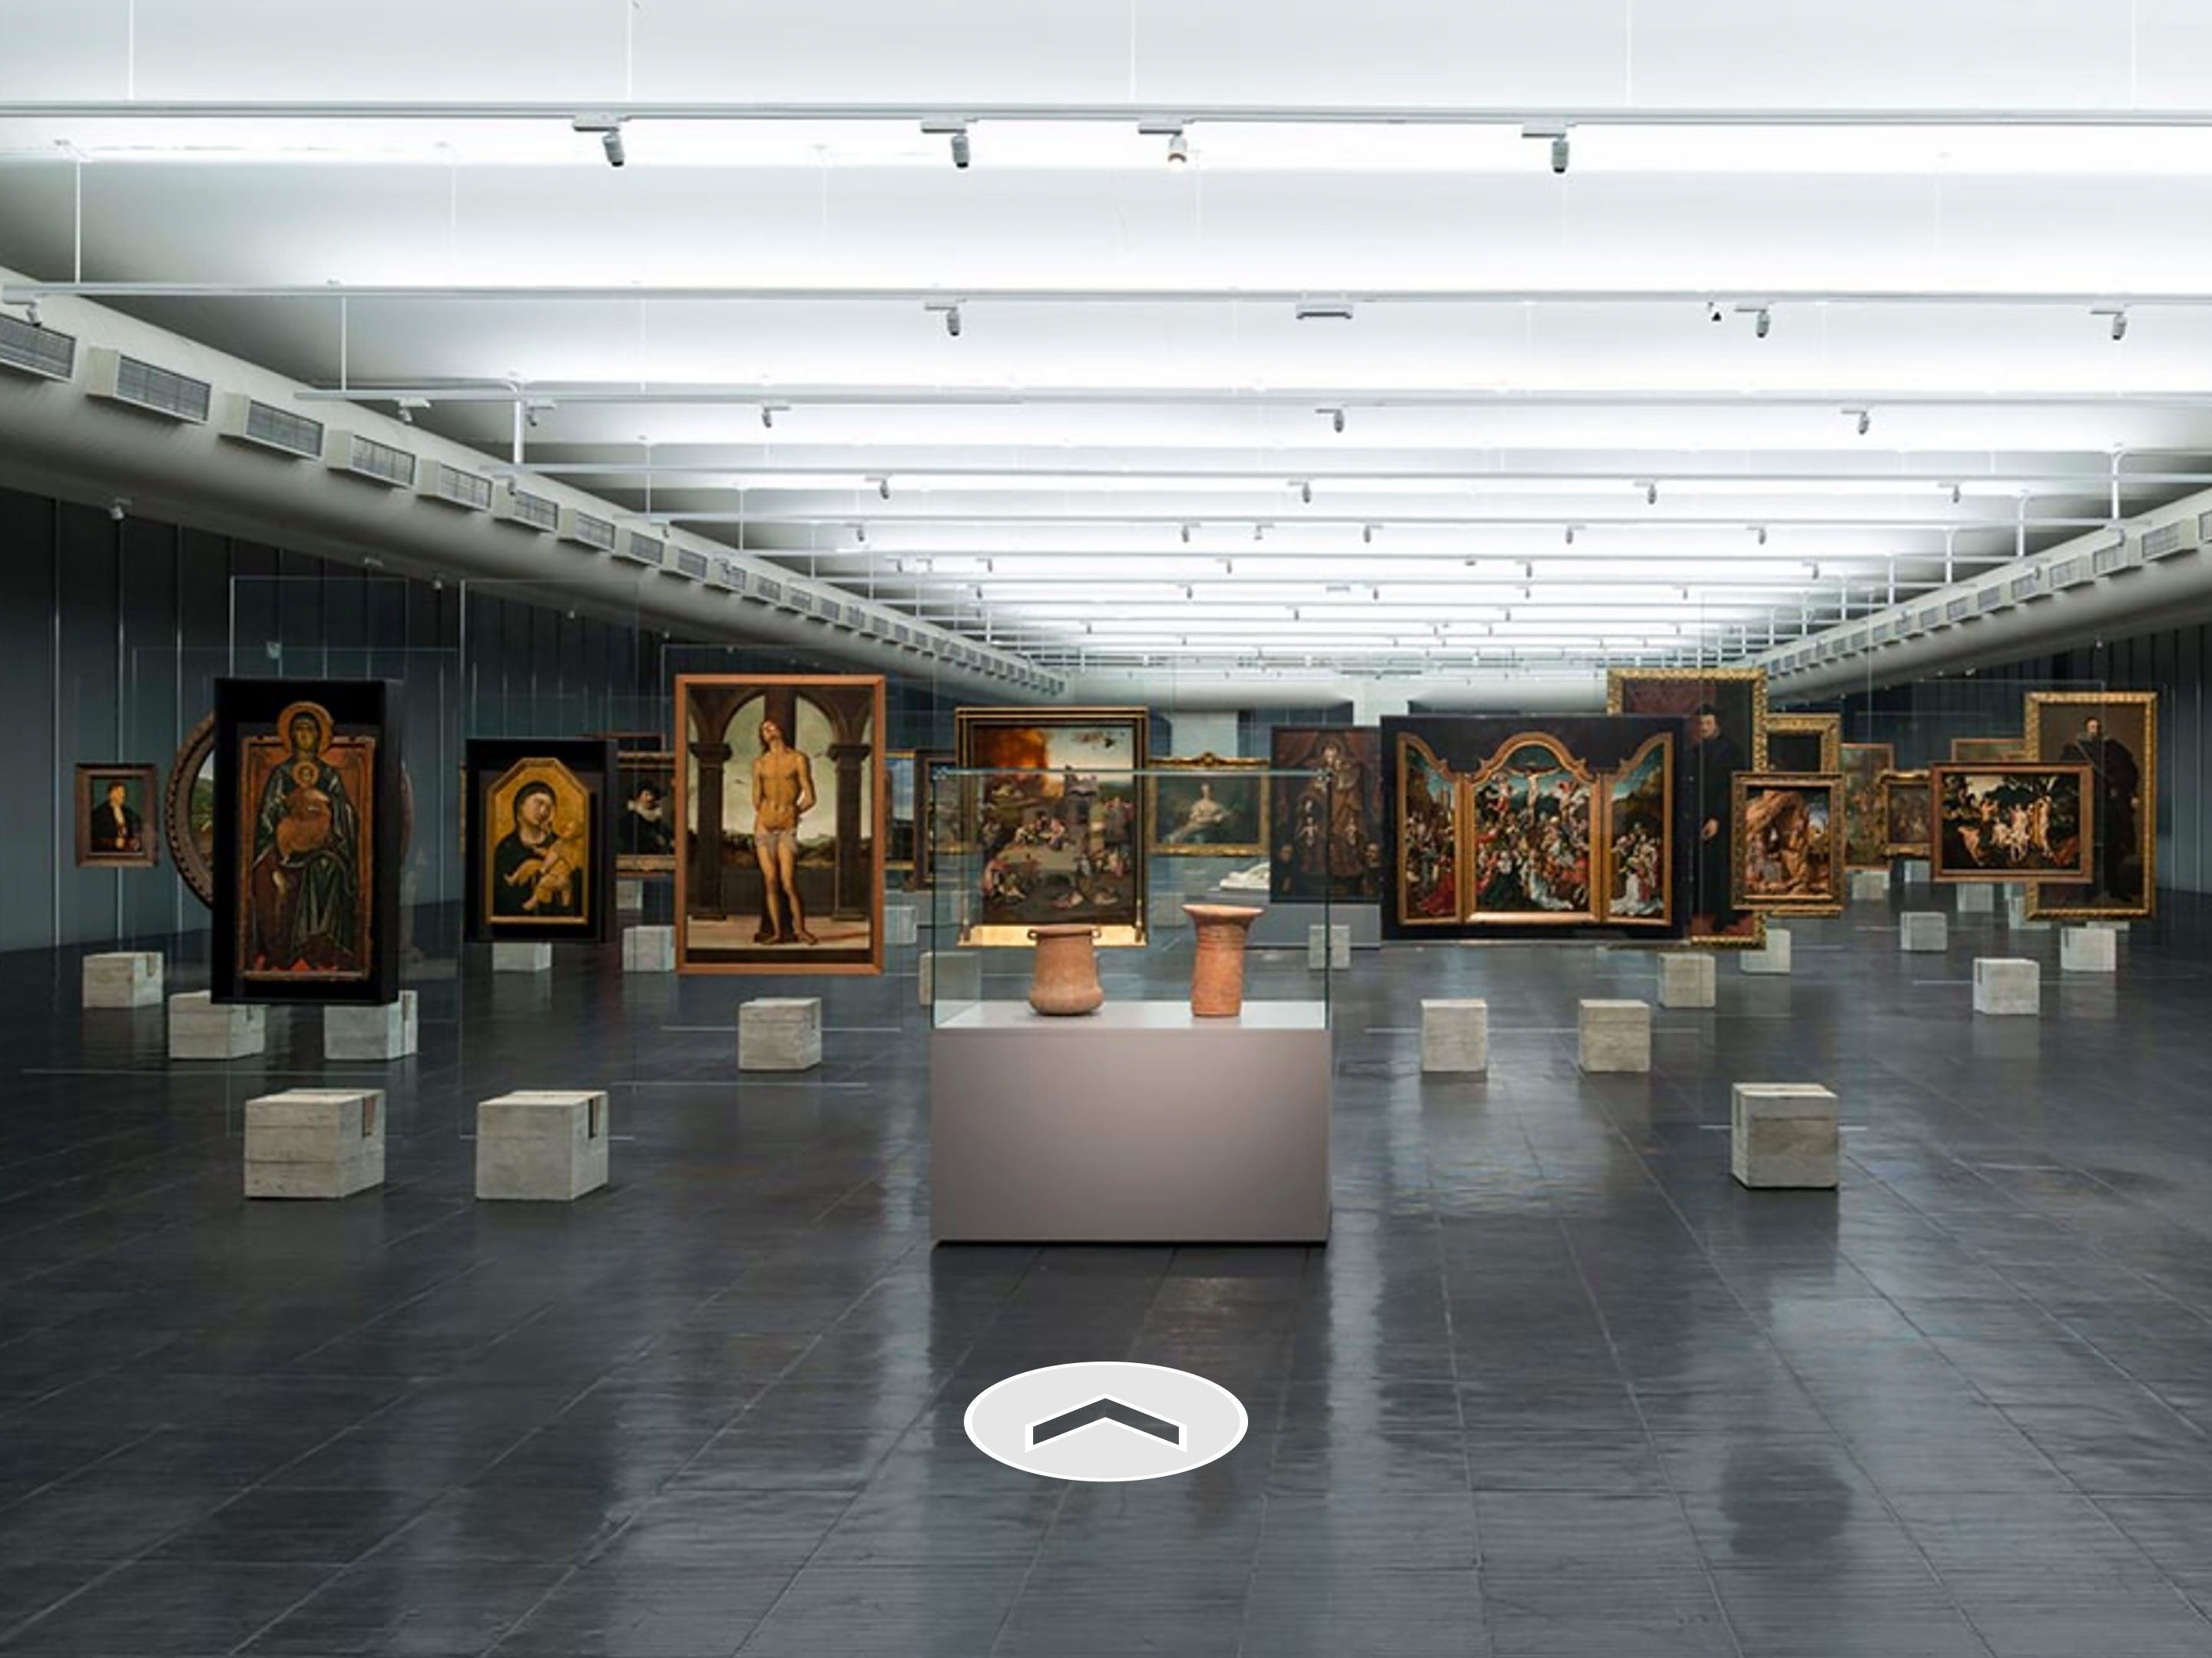 Various paintings lined up in a wide gallery space with a direction arrow at the bottom.